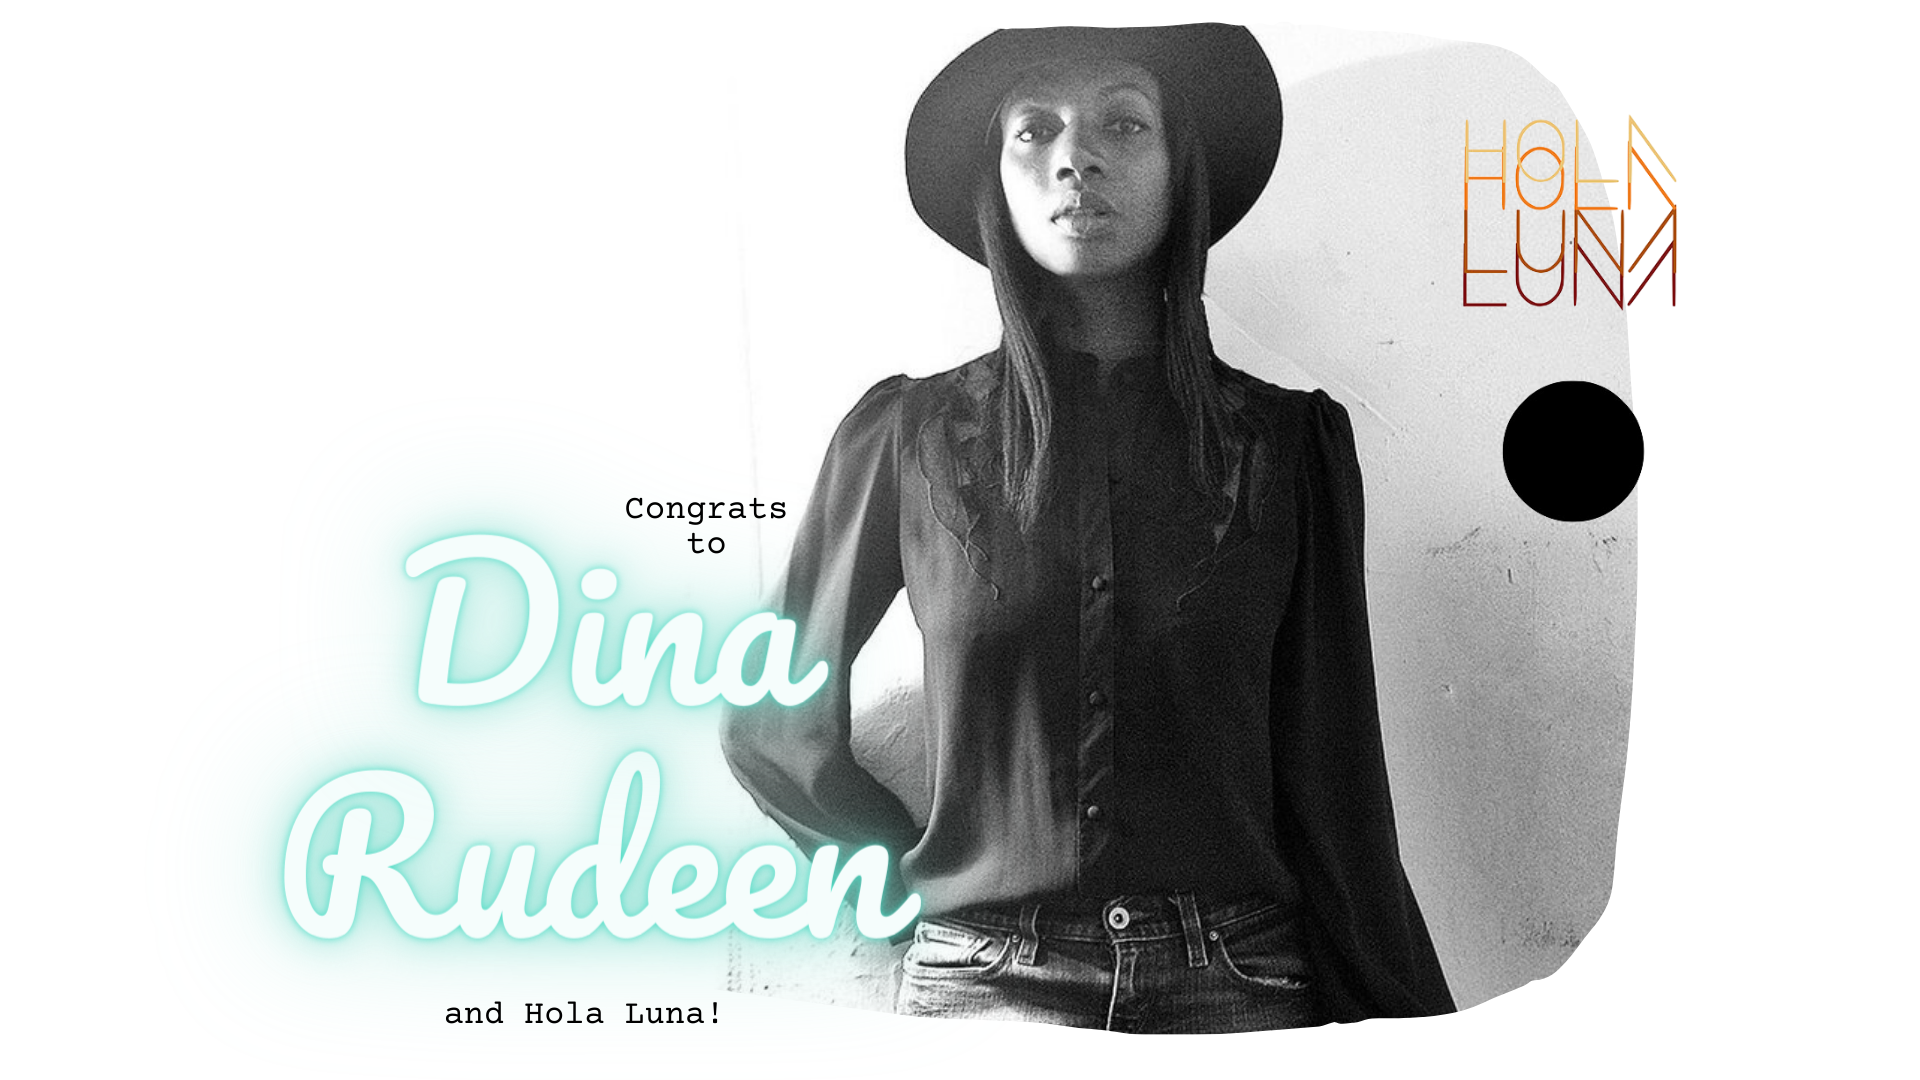 Honorable mention goes to Dina Rudeen w/ Hola Luna!